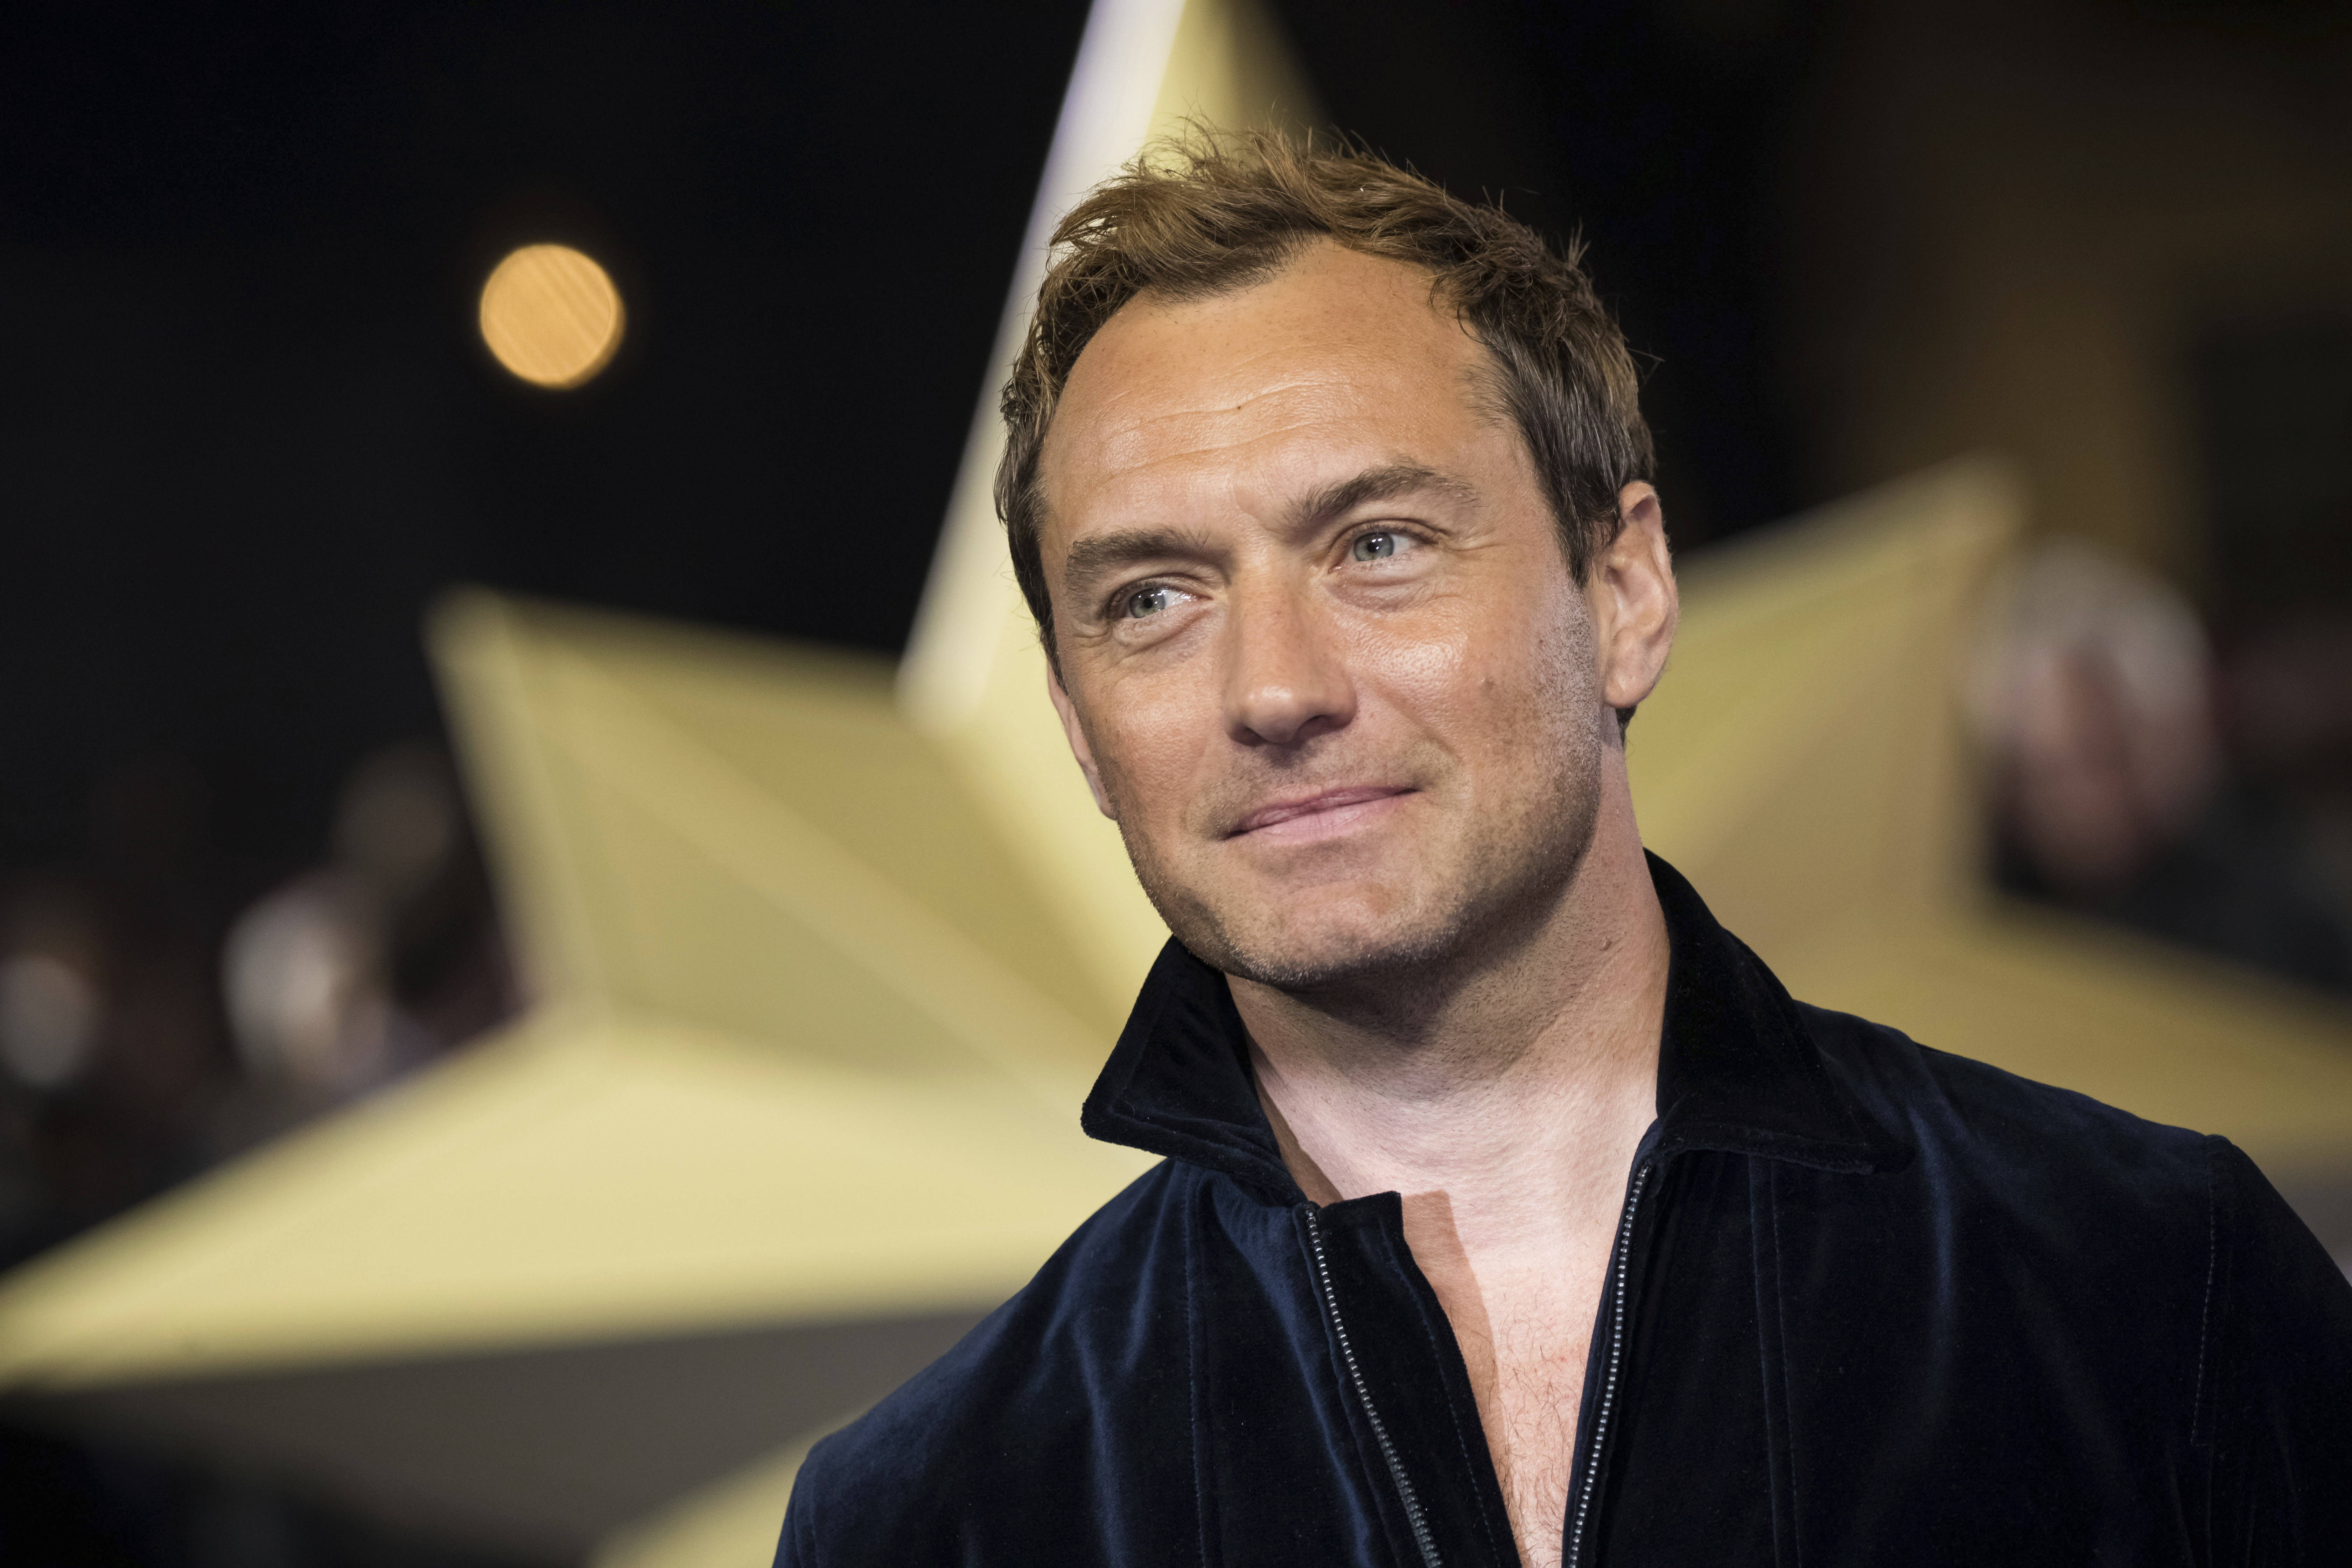 """FILE - In this Feb. 27, 2019 file photo, actor Jude Law poses for photographers upon arrival at the premiere of the film 'Captain Marvel', in London. Law is among the readers in an all-star recording of J.K. Rowling's """"The Tales of Beedle the Bard,"""" the first time her Harry Potter spinoff has been available as an audio book. (Photo by Vianney Le Caer/Invision/AP, File)"""